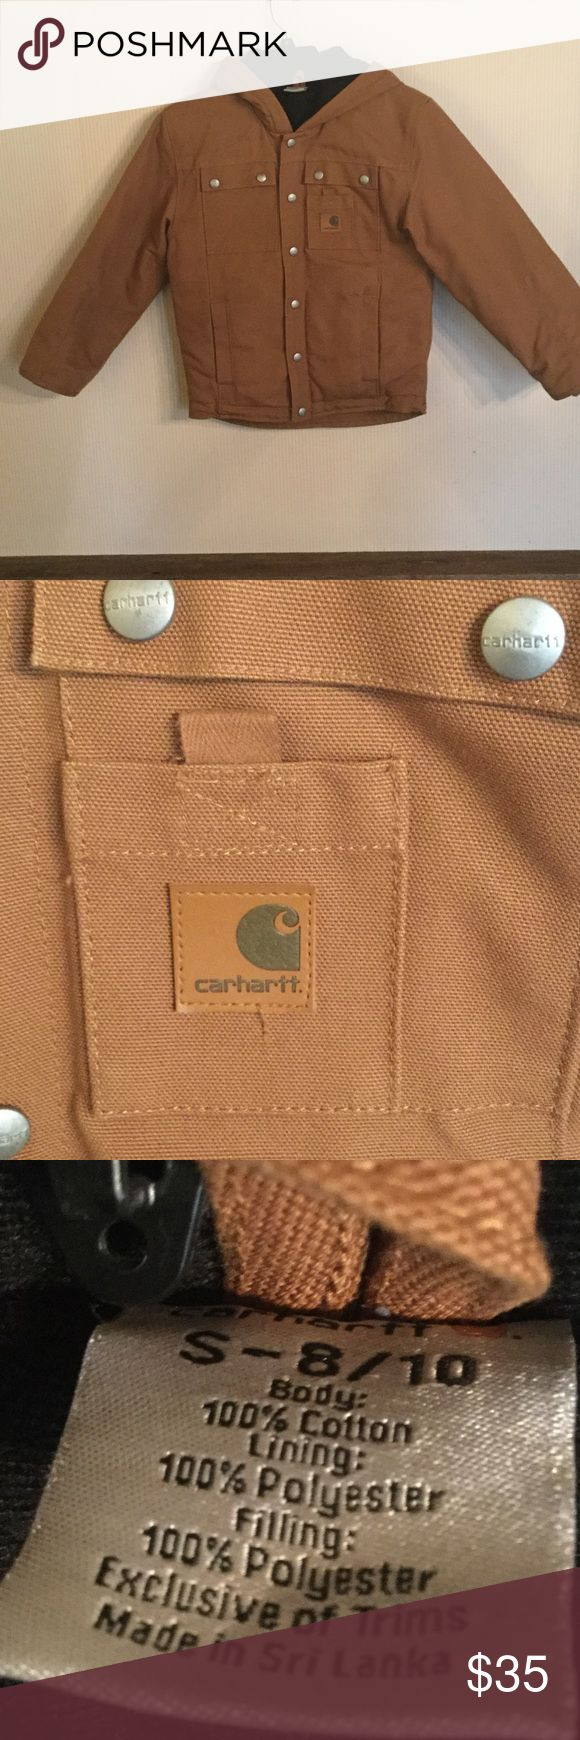 """Boys Carhartt Coat Boys Carhartt coat. Worn only 3 times. Has a hood and lots of pockets. Lined with very warm material. Silver toned snap buttons. Reasonable offers considered. Does have a """"B"""" on back of tag!!! Carhartt Jackets & Coats"""